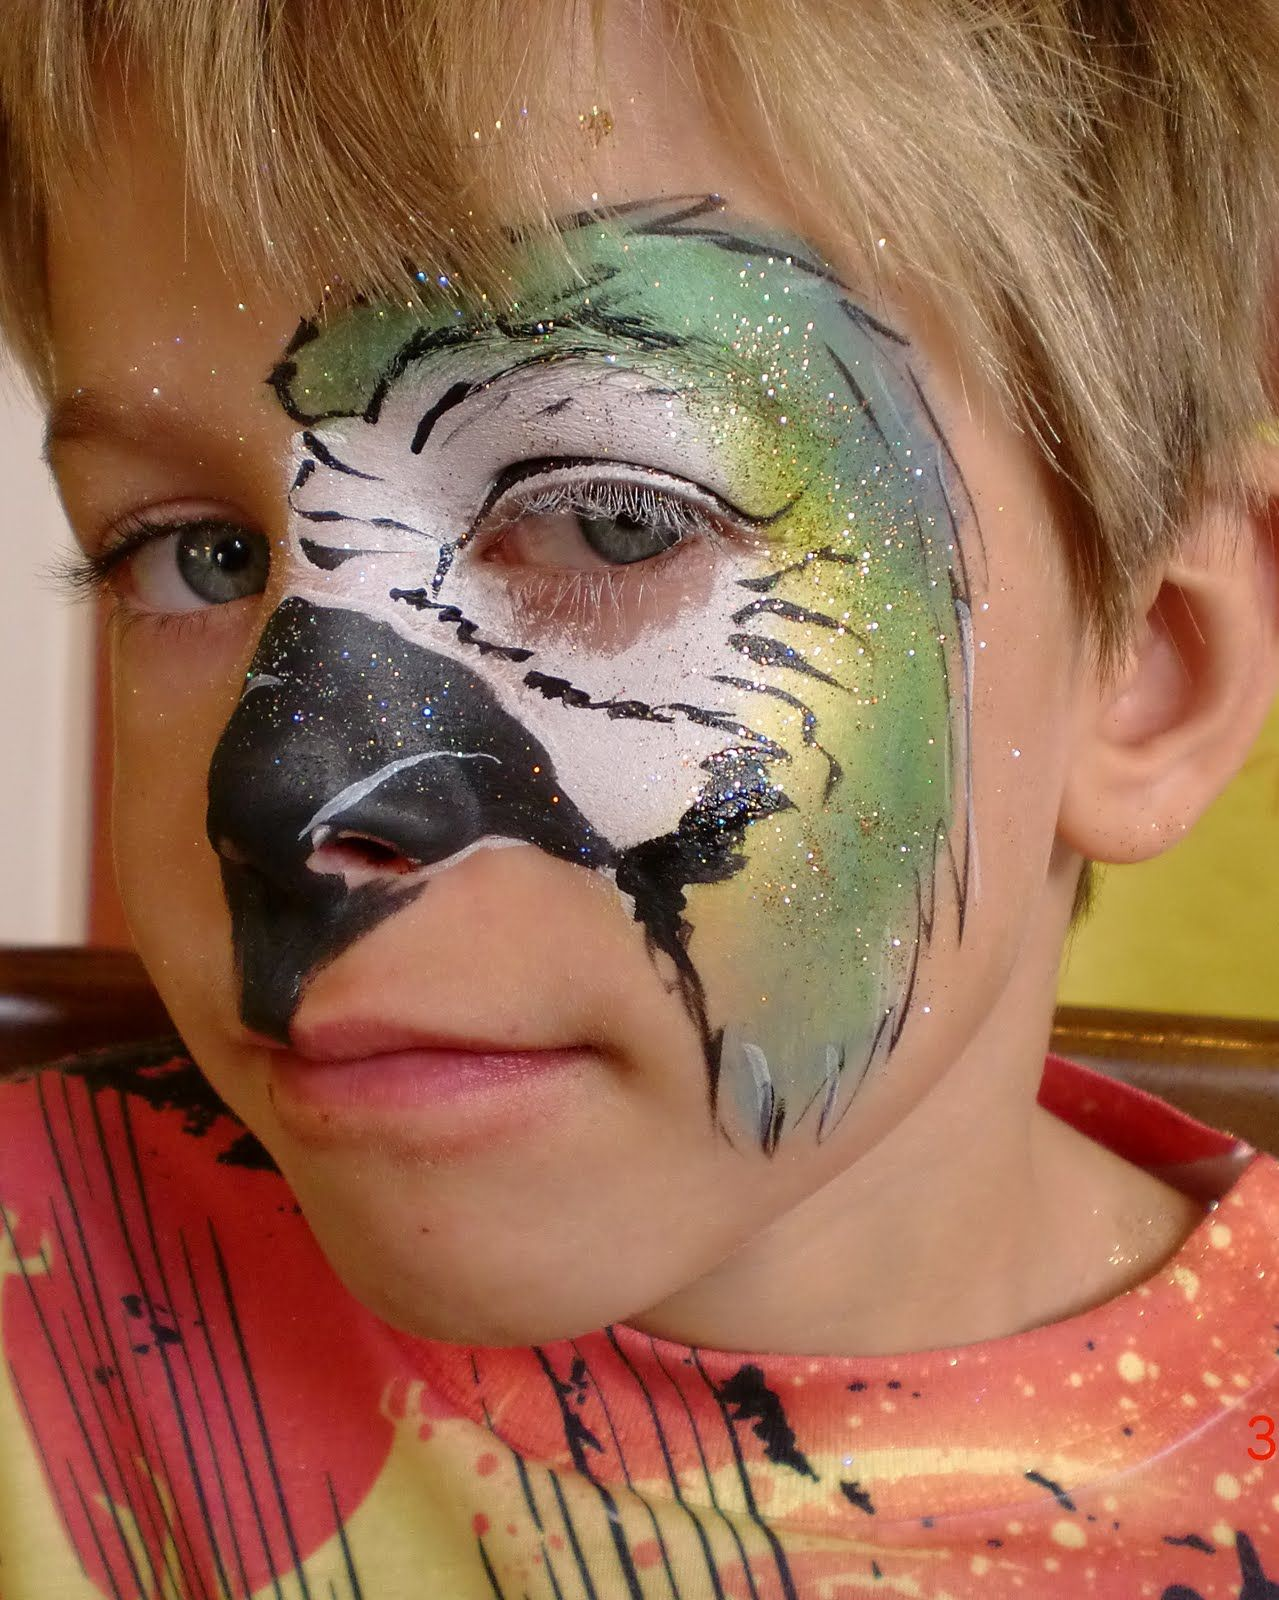 face painting | Face Painting Illusions and Balloon Art ...